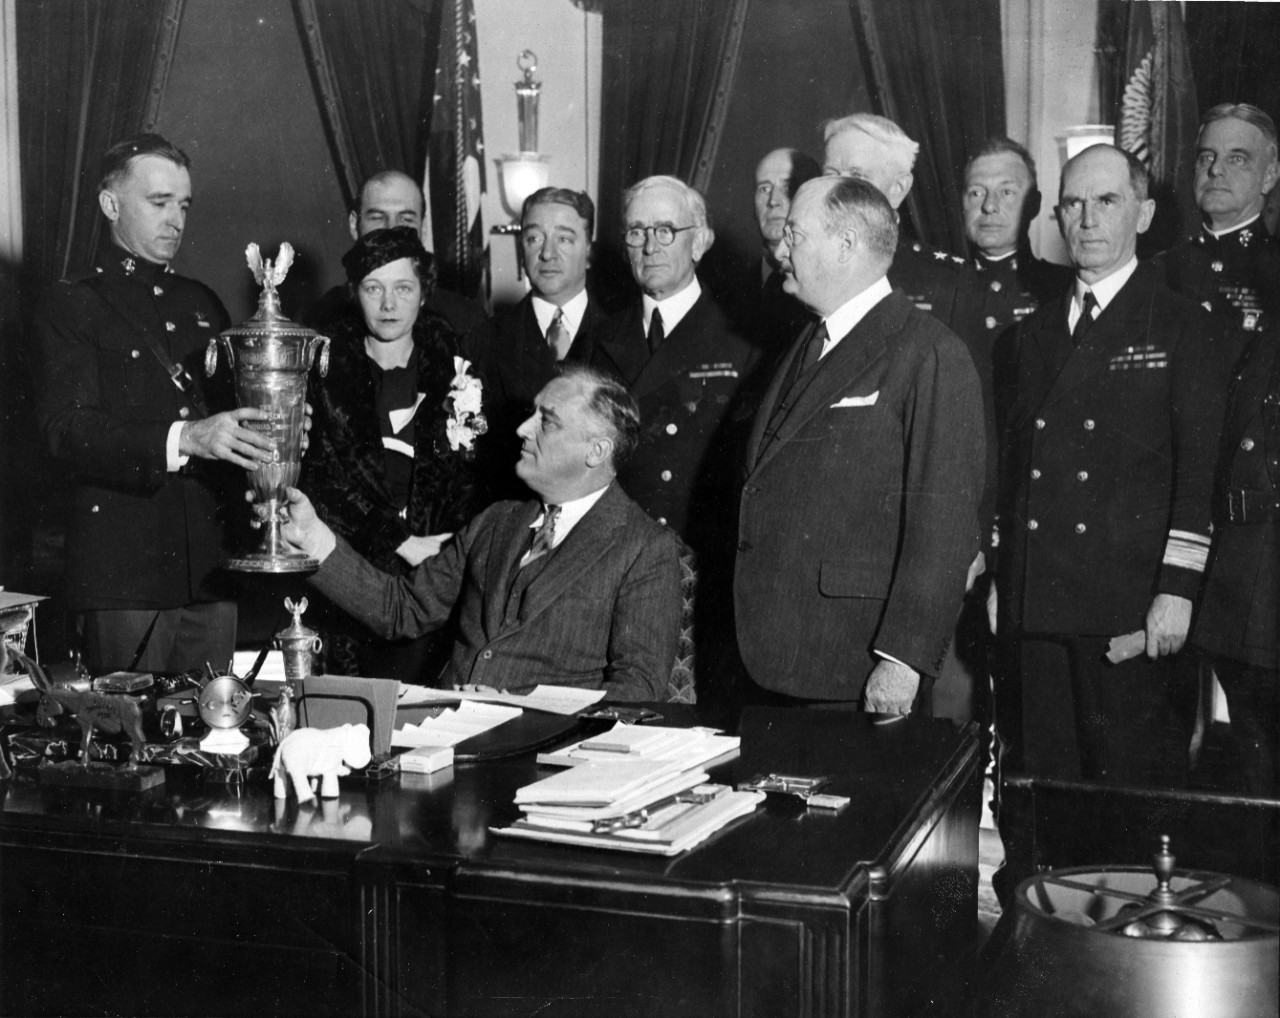 President Franklin D. Roosevelt presents the Herbert Schiff Trophy for naval aviation safety to a Marine aviator, at a ceremony in the White House. At center, standing, is Chief of Naval Operations Admiral William H. Standley. Also seen are Rear Admiral Ernest J. King (standing, center rear) and Rear Admiral William Leahy (at right).